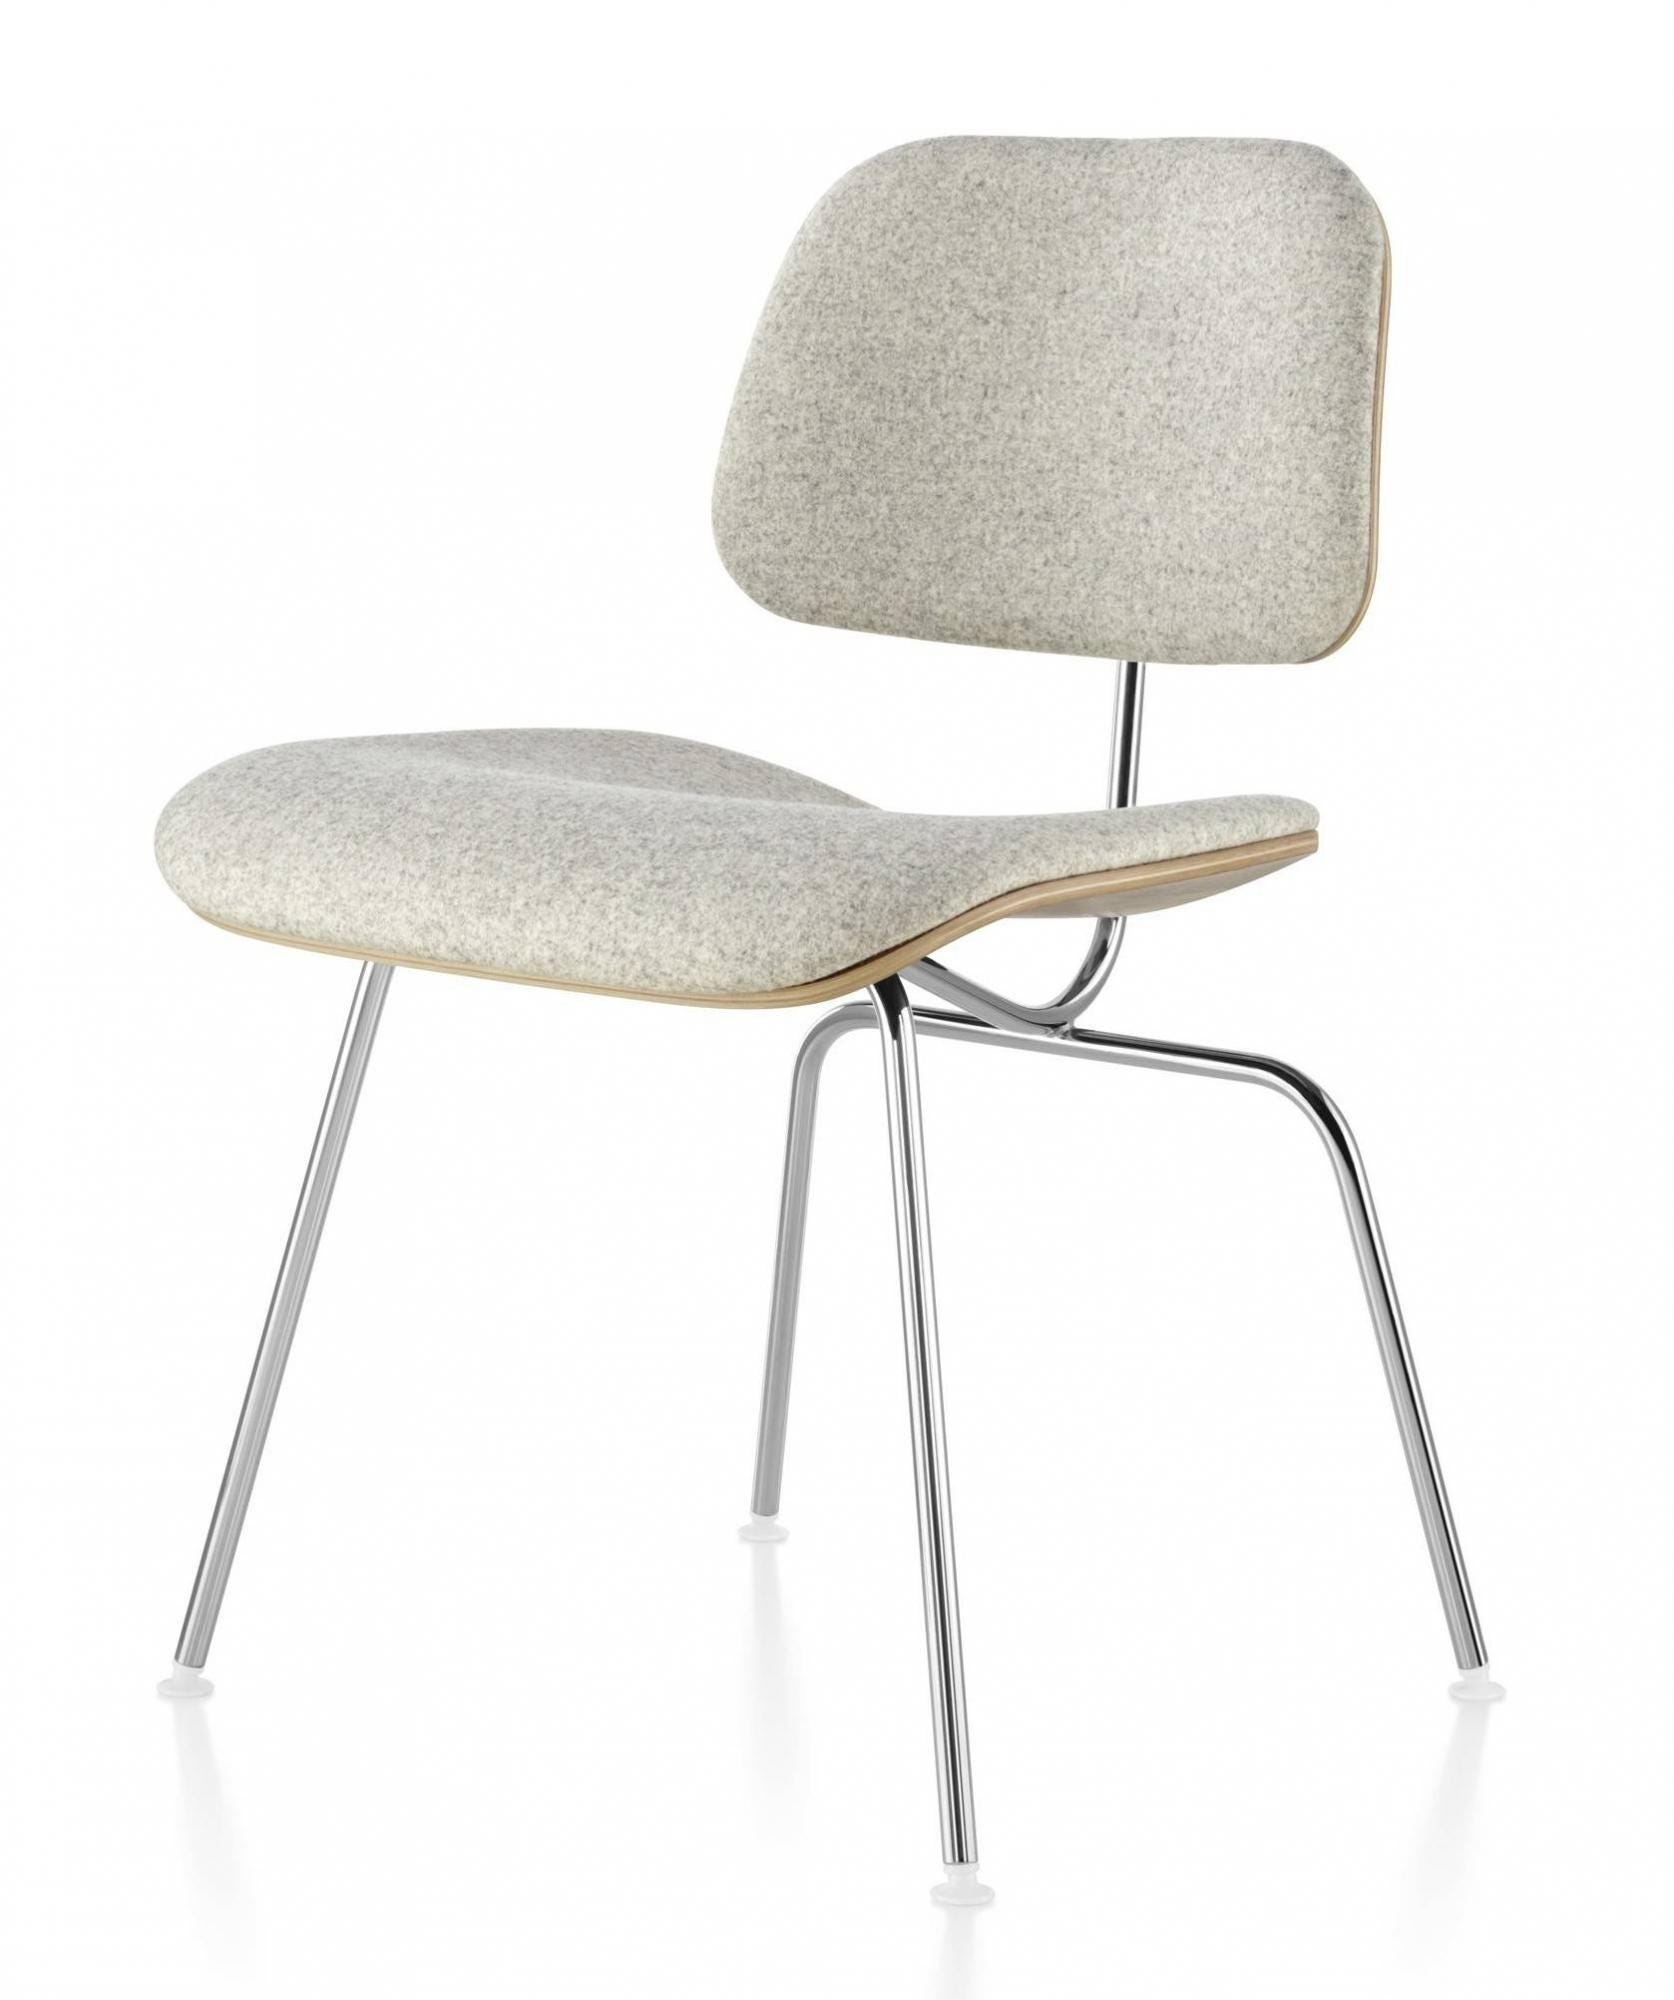 Herman Miller Eames174 Molded Plywood Upholstered Dining  : eamesdiningchairmetallegs 7 from grshop.com size 1678 x 2004 jpeg 228kB